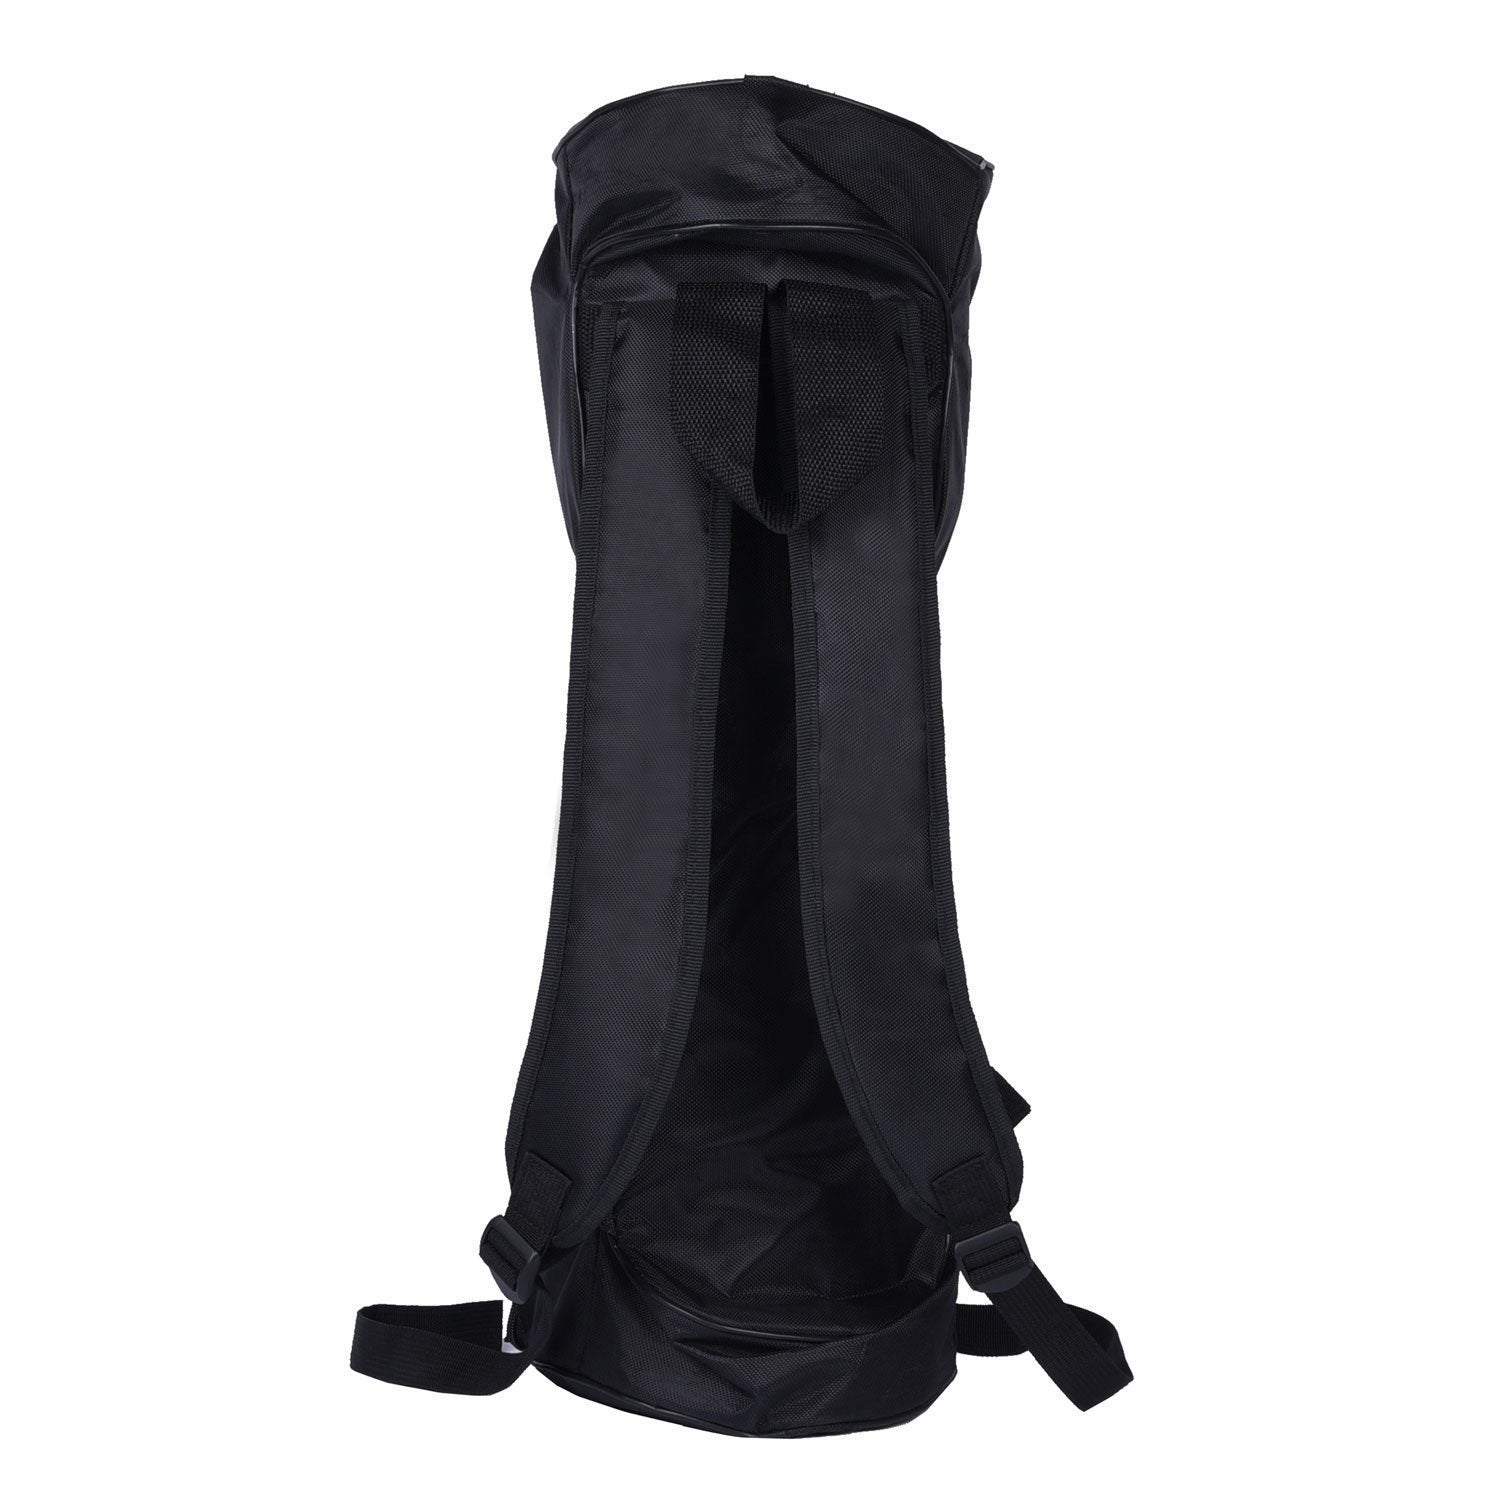 6.5 INCH BACKPACK BAG (6.5